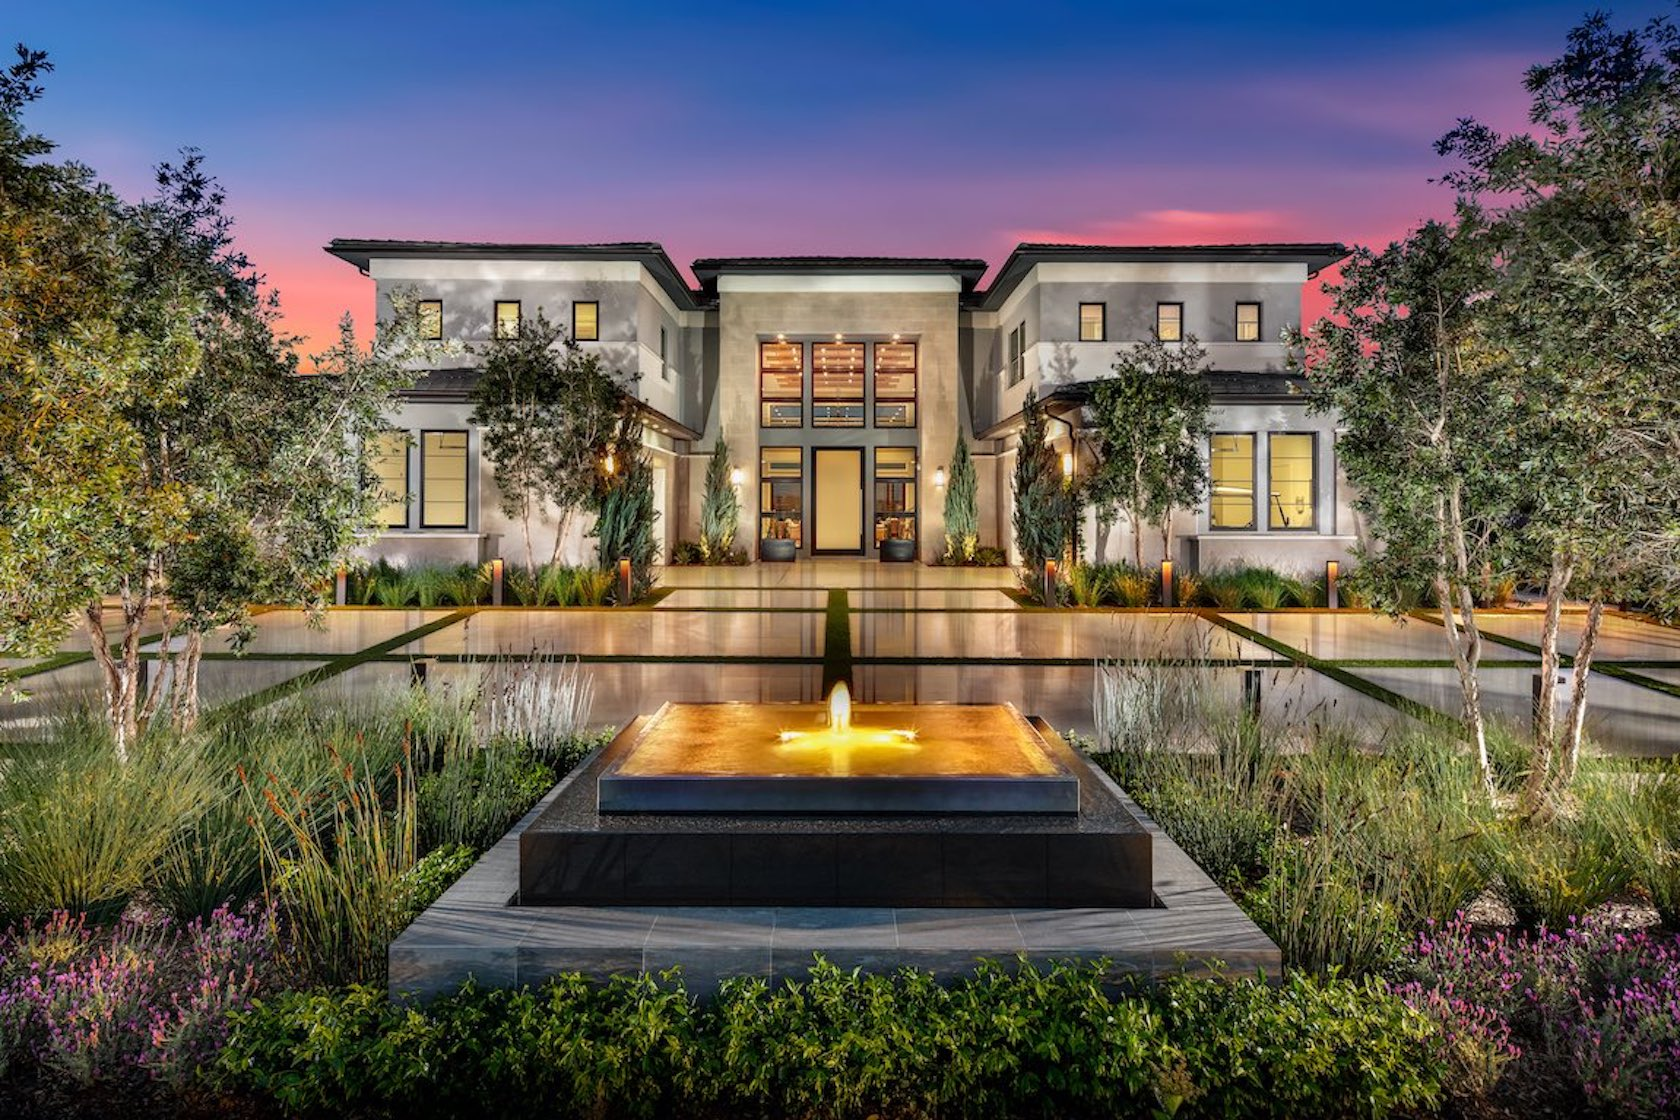 Exterior of luxury home with water fountain.